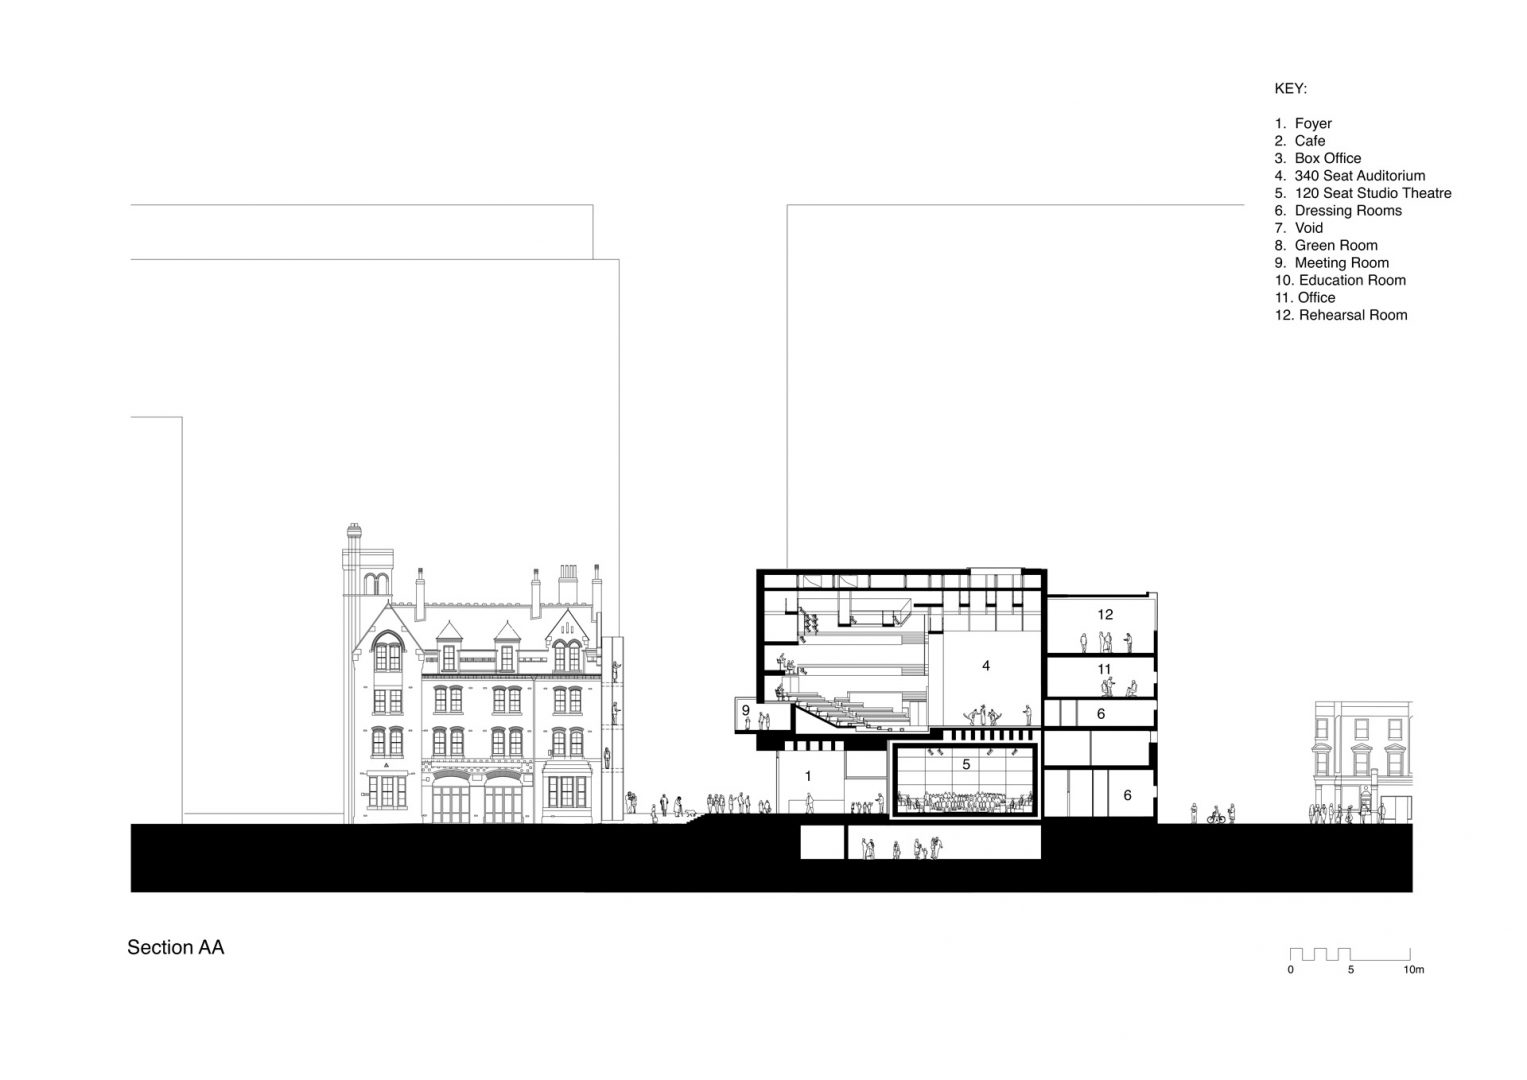 Section through the main auditorium, the Weston Theatre at the Unicorn. Drawing by Keith Williams Architects